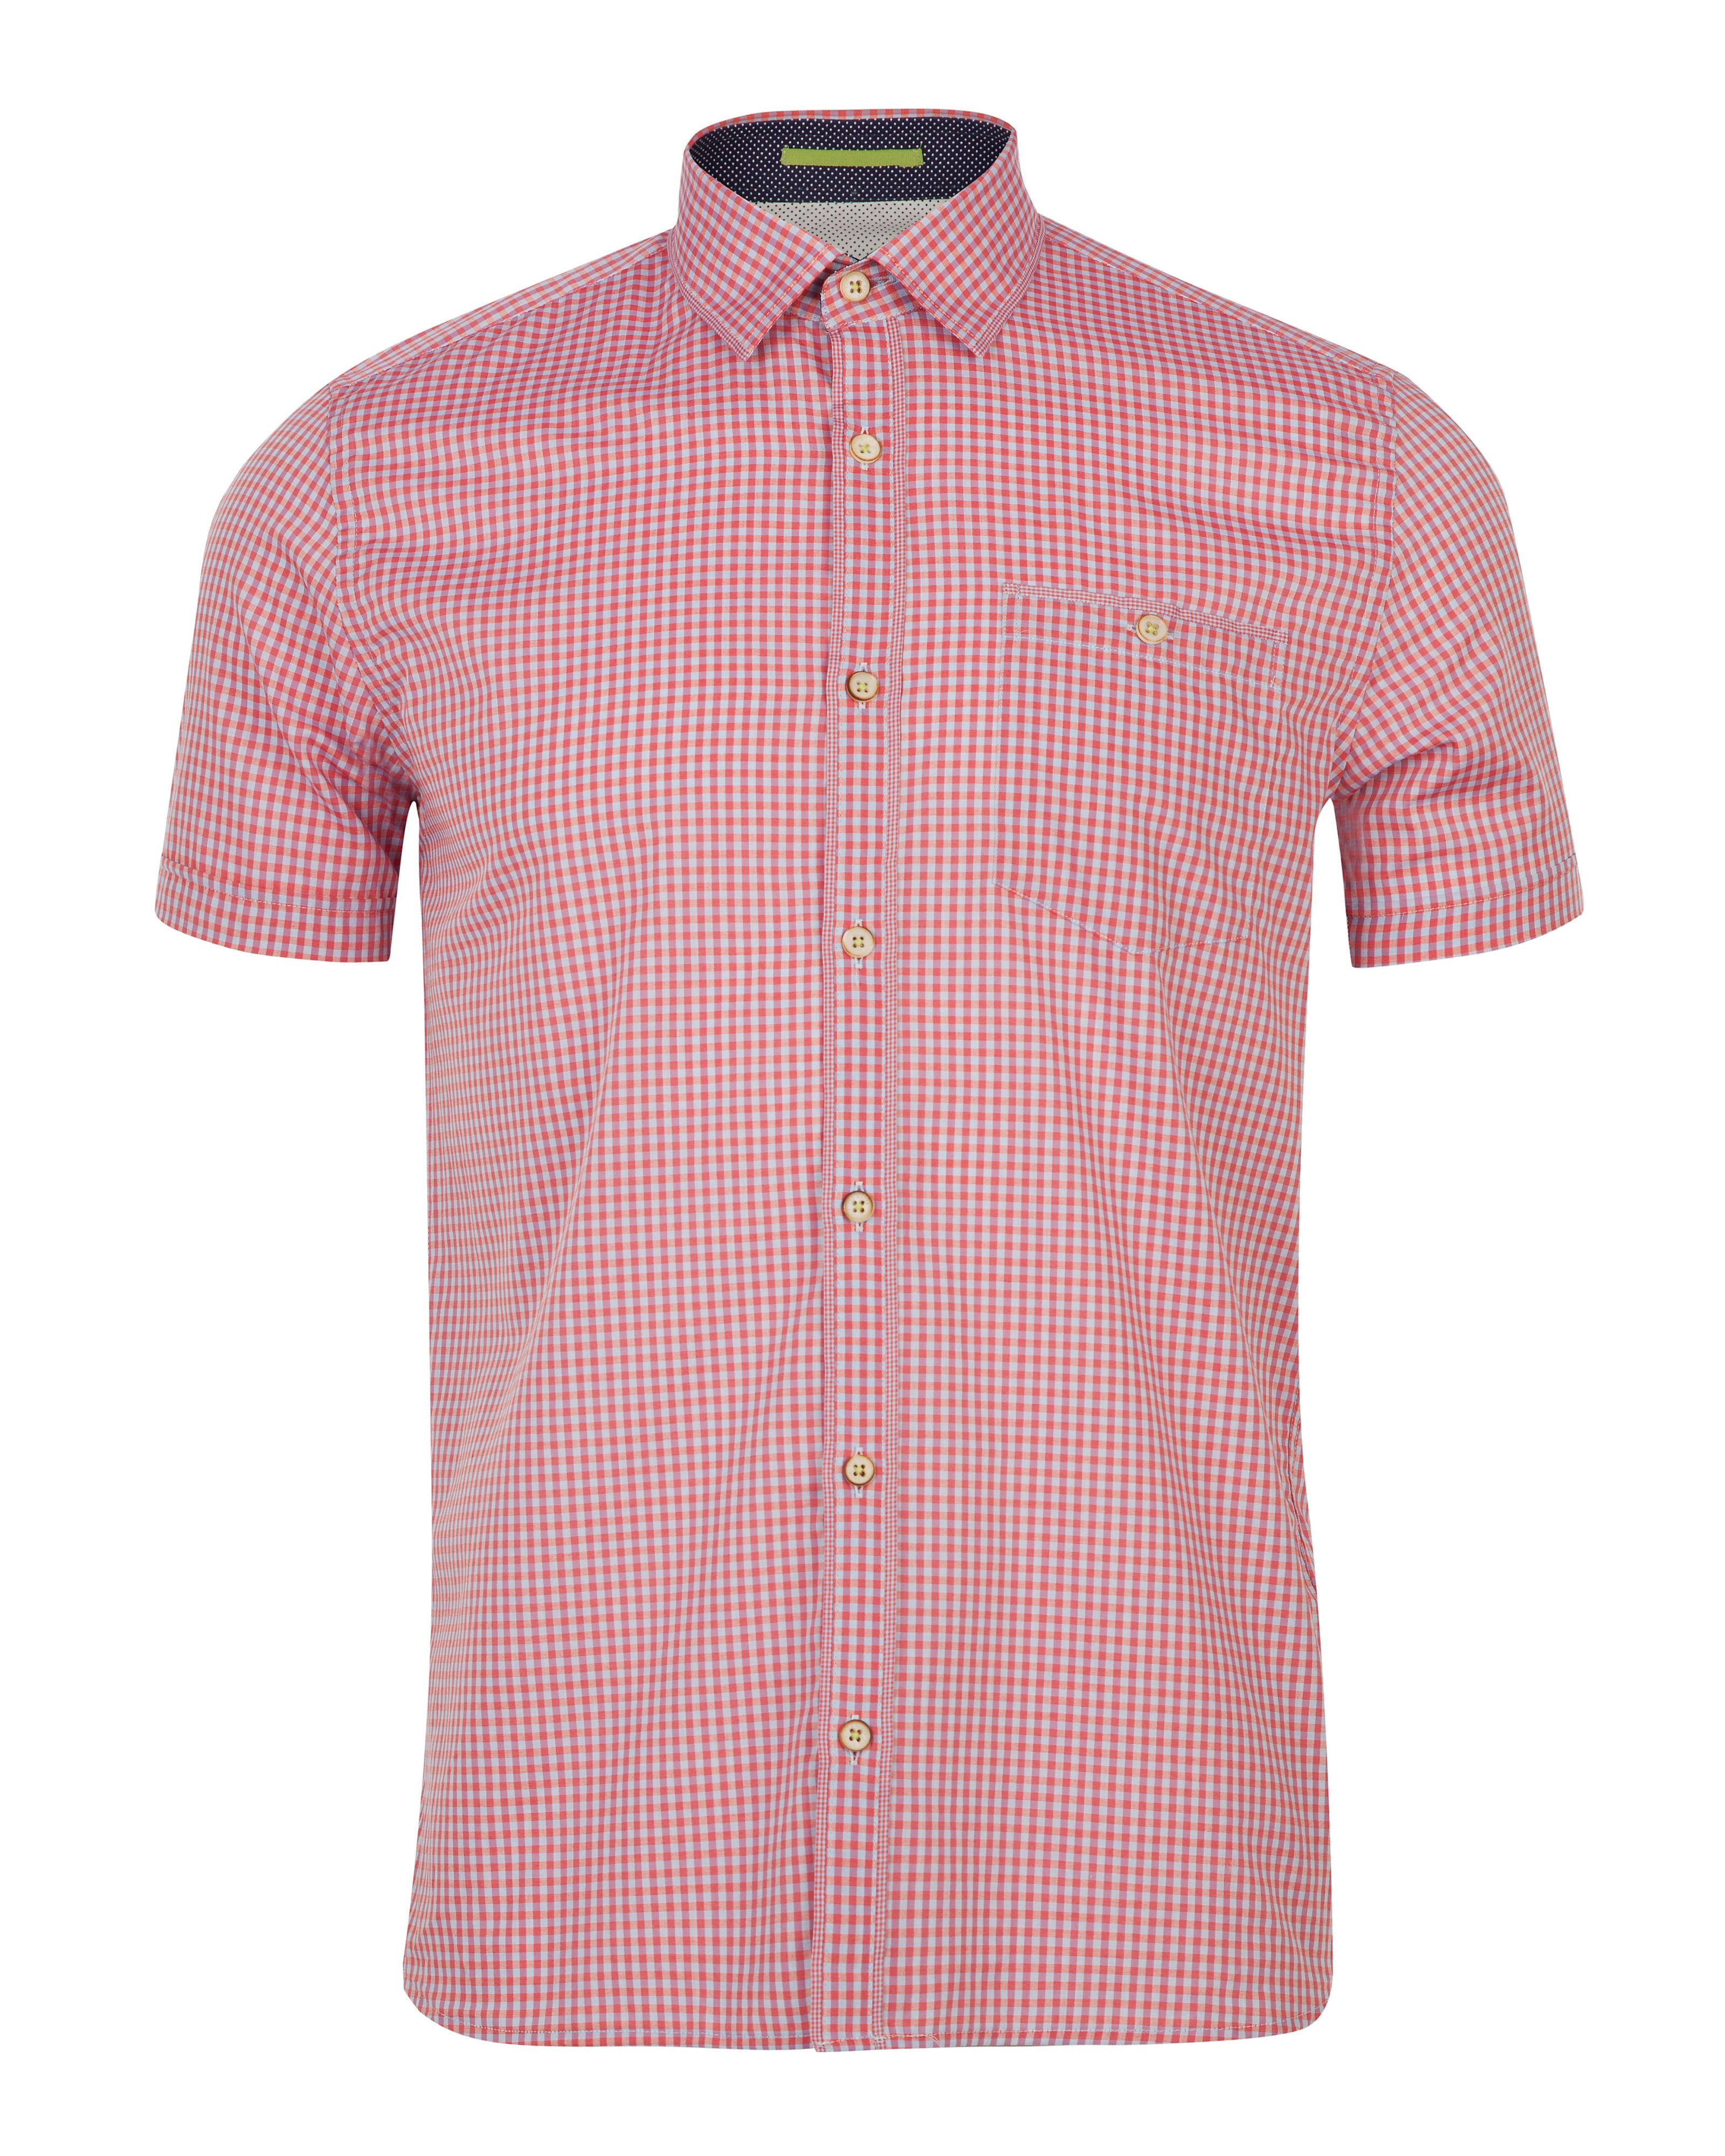 Bremyo checked short sleeve shirt